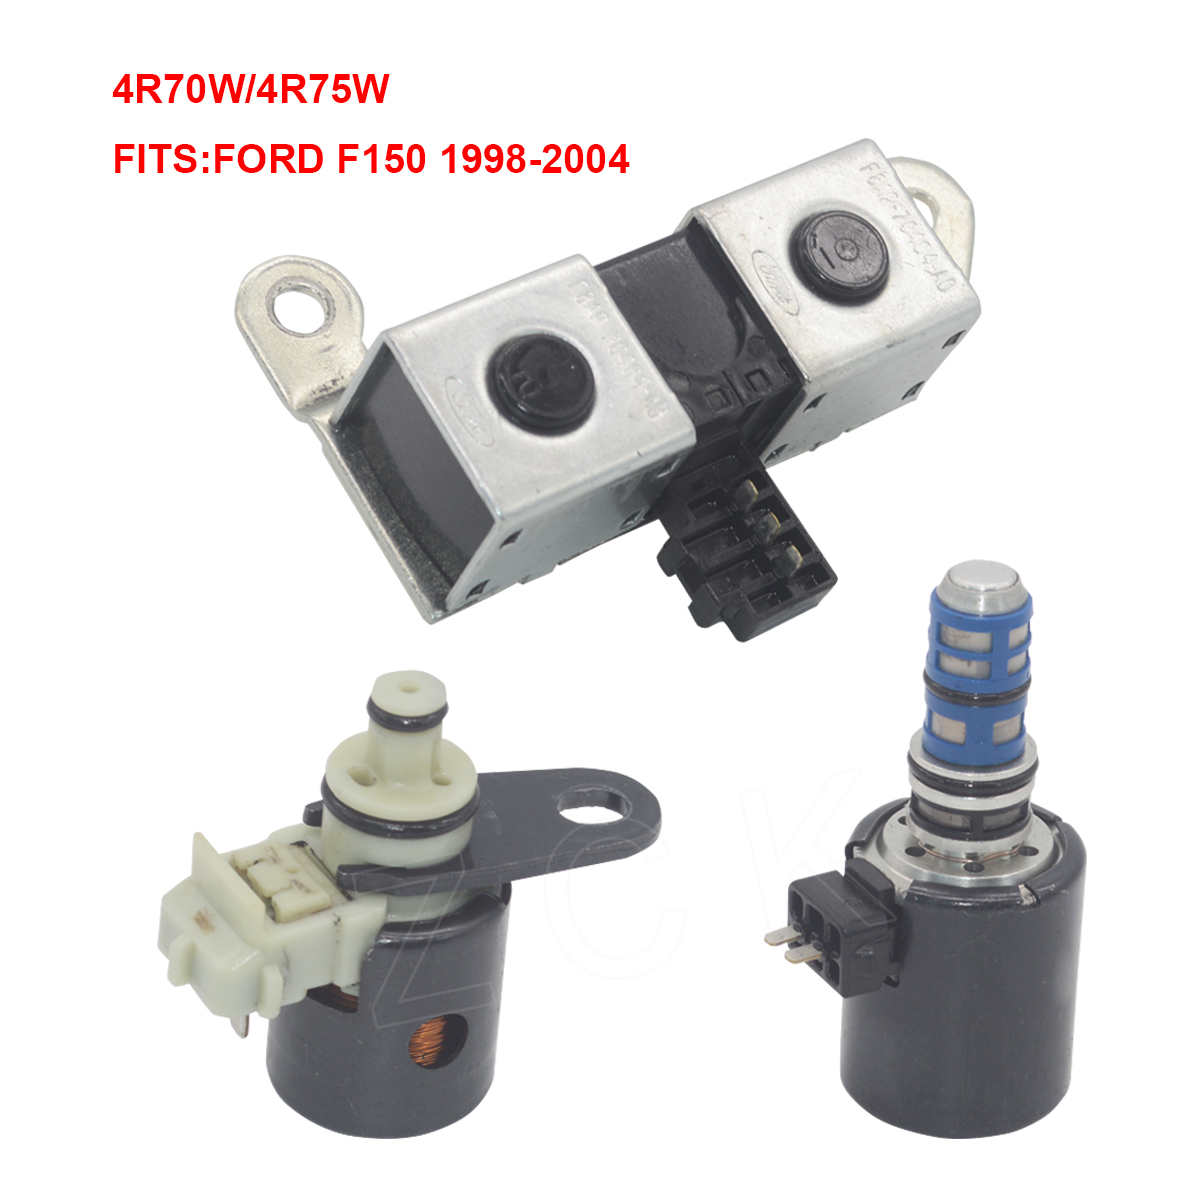 Oem 4r70w 4r75w Transmission Tcc Epc Shift Solenoid Kit For Ford